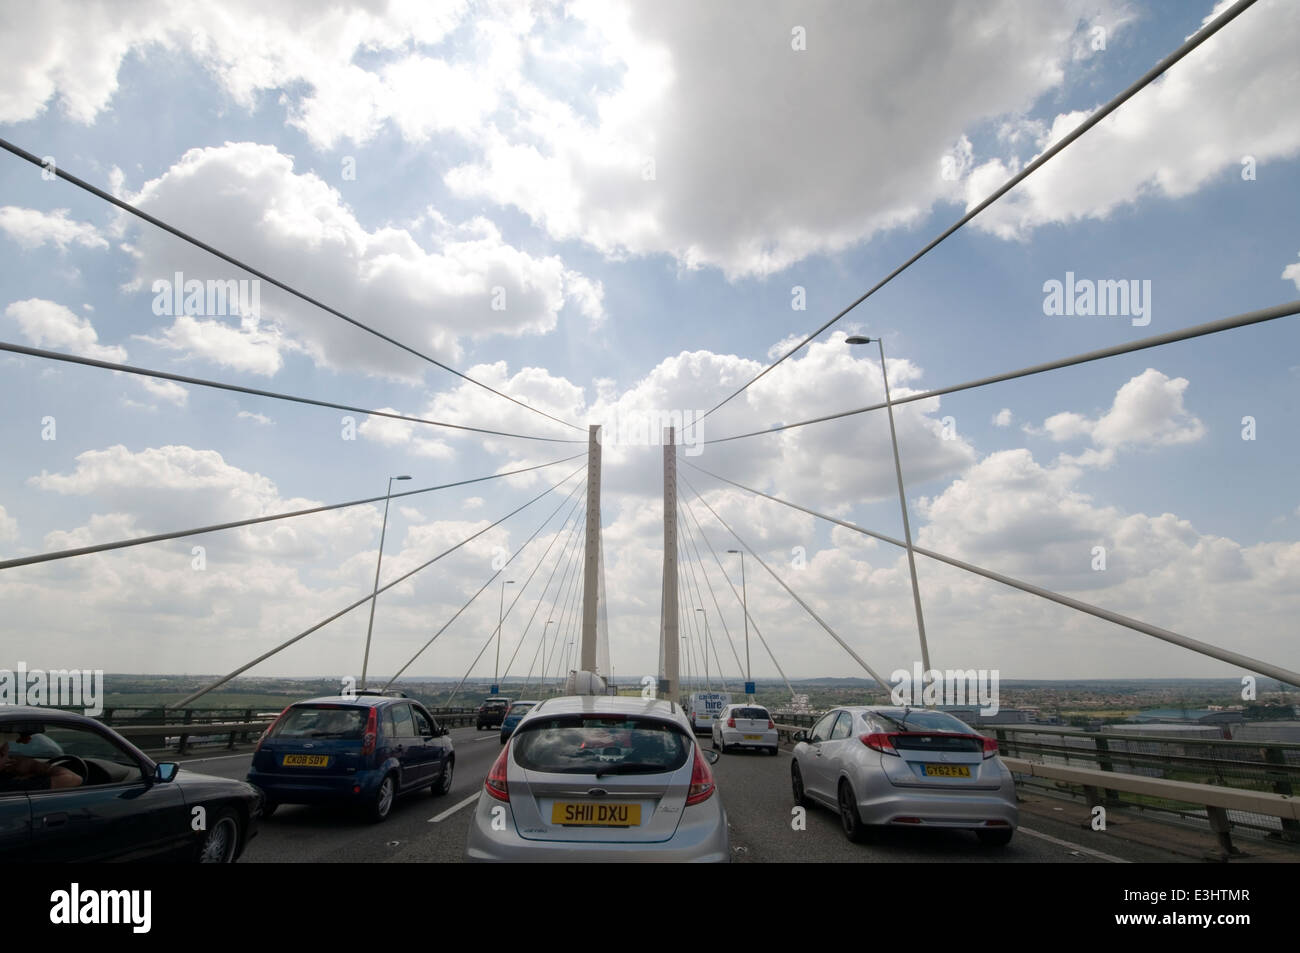 qe2 bridge queen Elizabeth the 2nd second road m25 dartford crossing traffic jam jams on the toll booth ques que - Stock Image